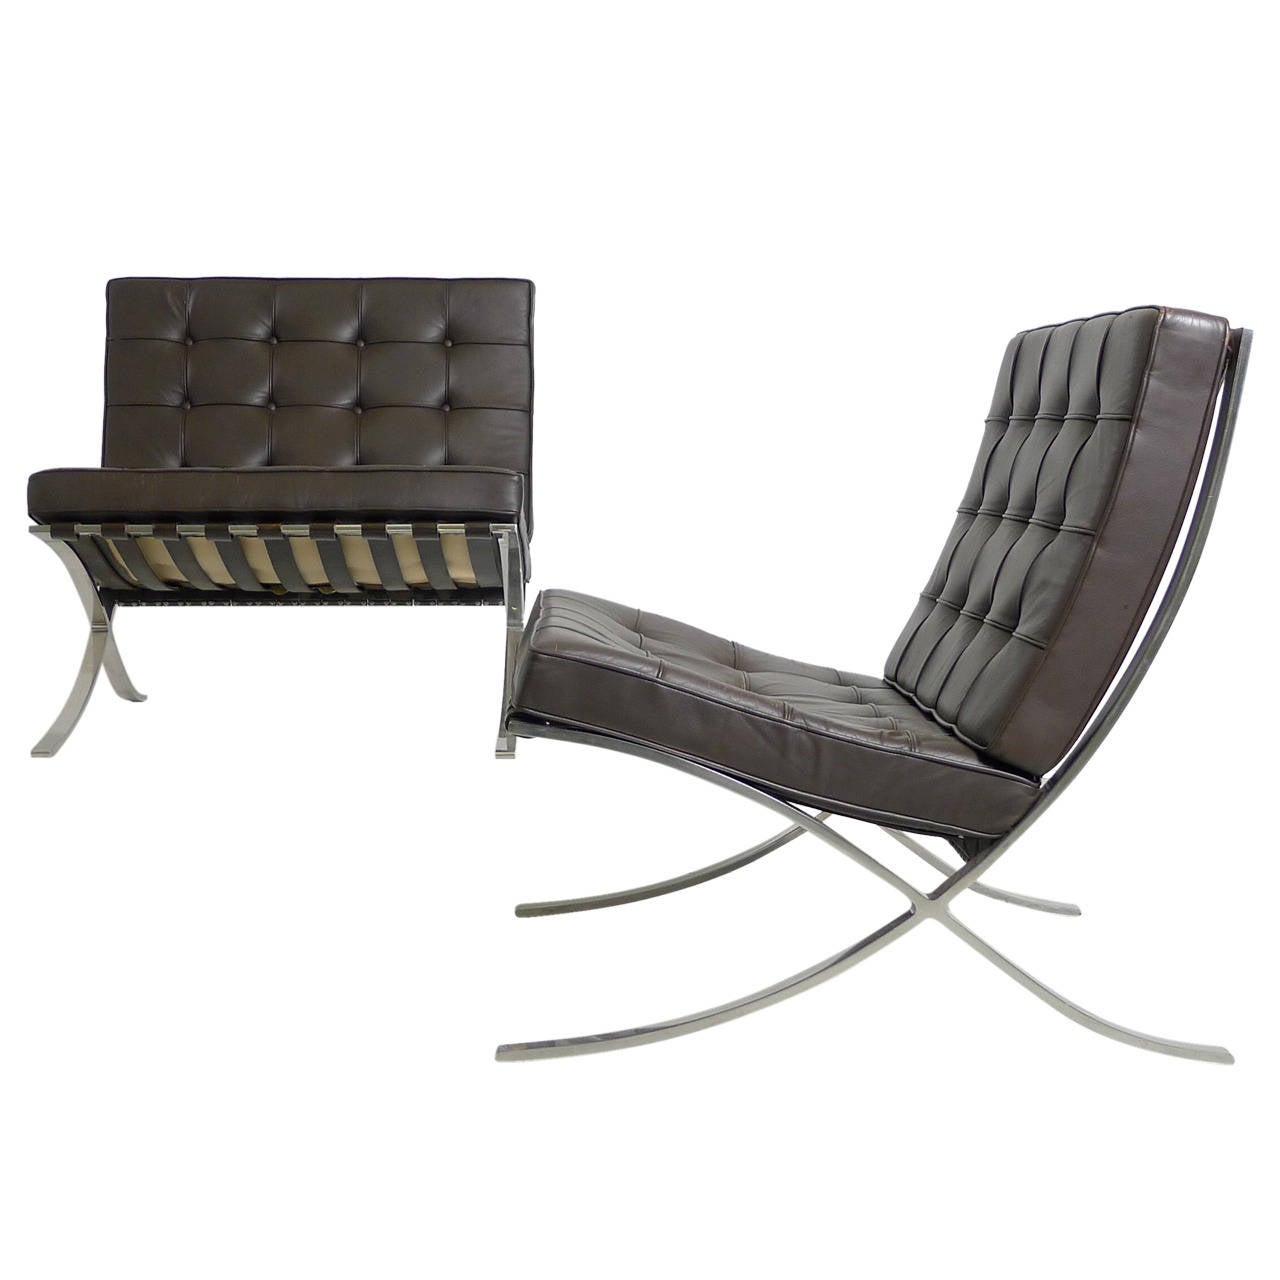 mies van der rohe pair of barcelona chairs at 1stdibs. Black Bedroom Furniture Sets. Home Design Ideas